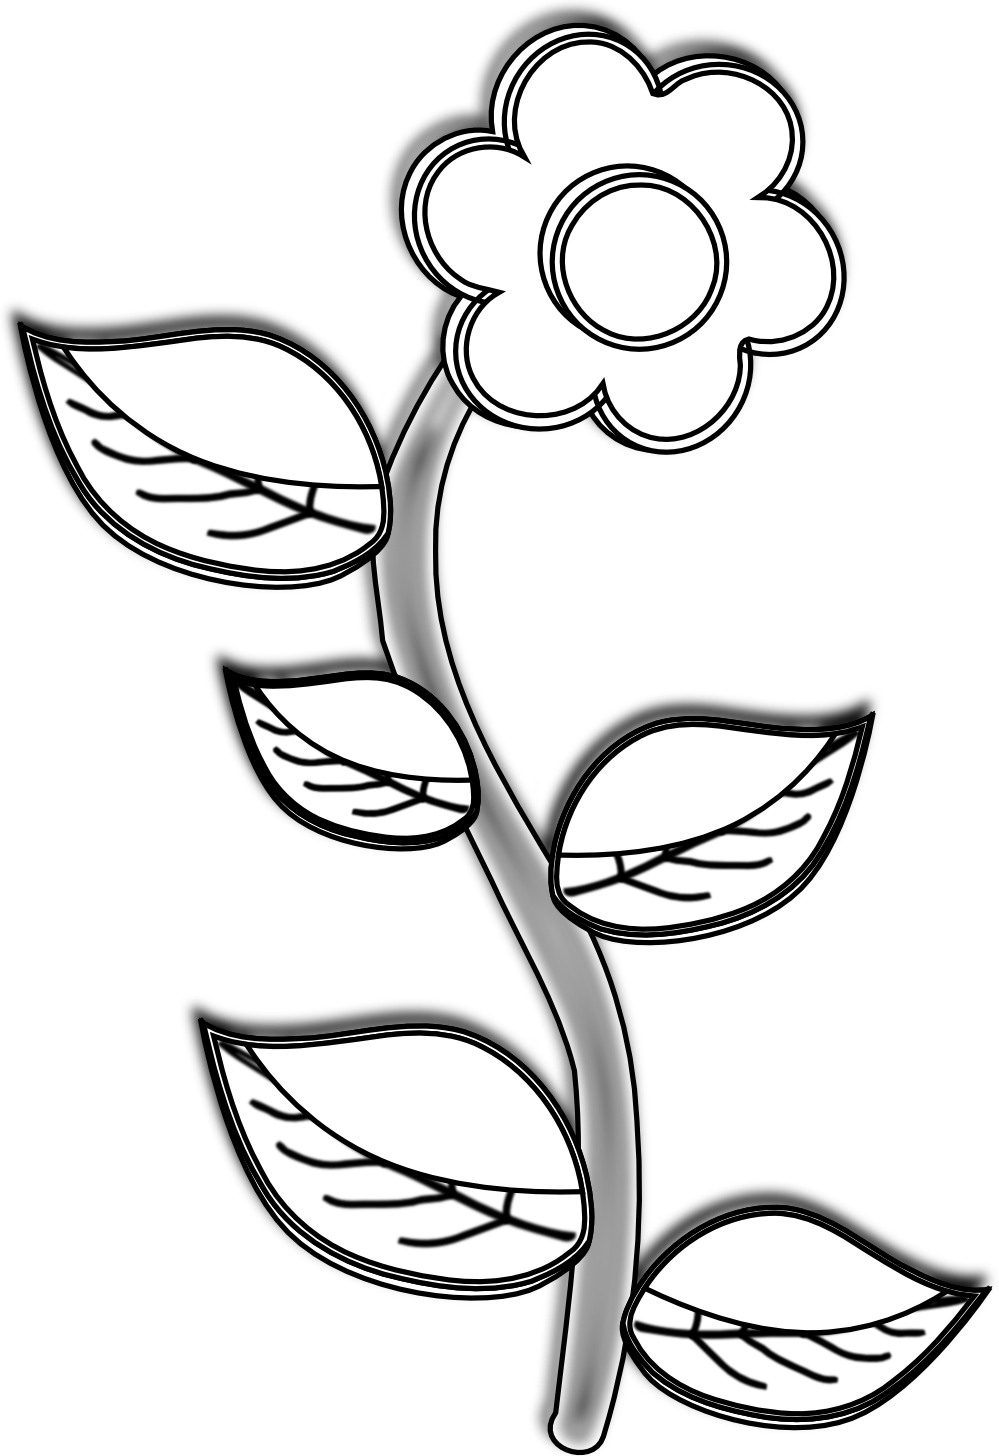 Flower Drawings In Black And